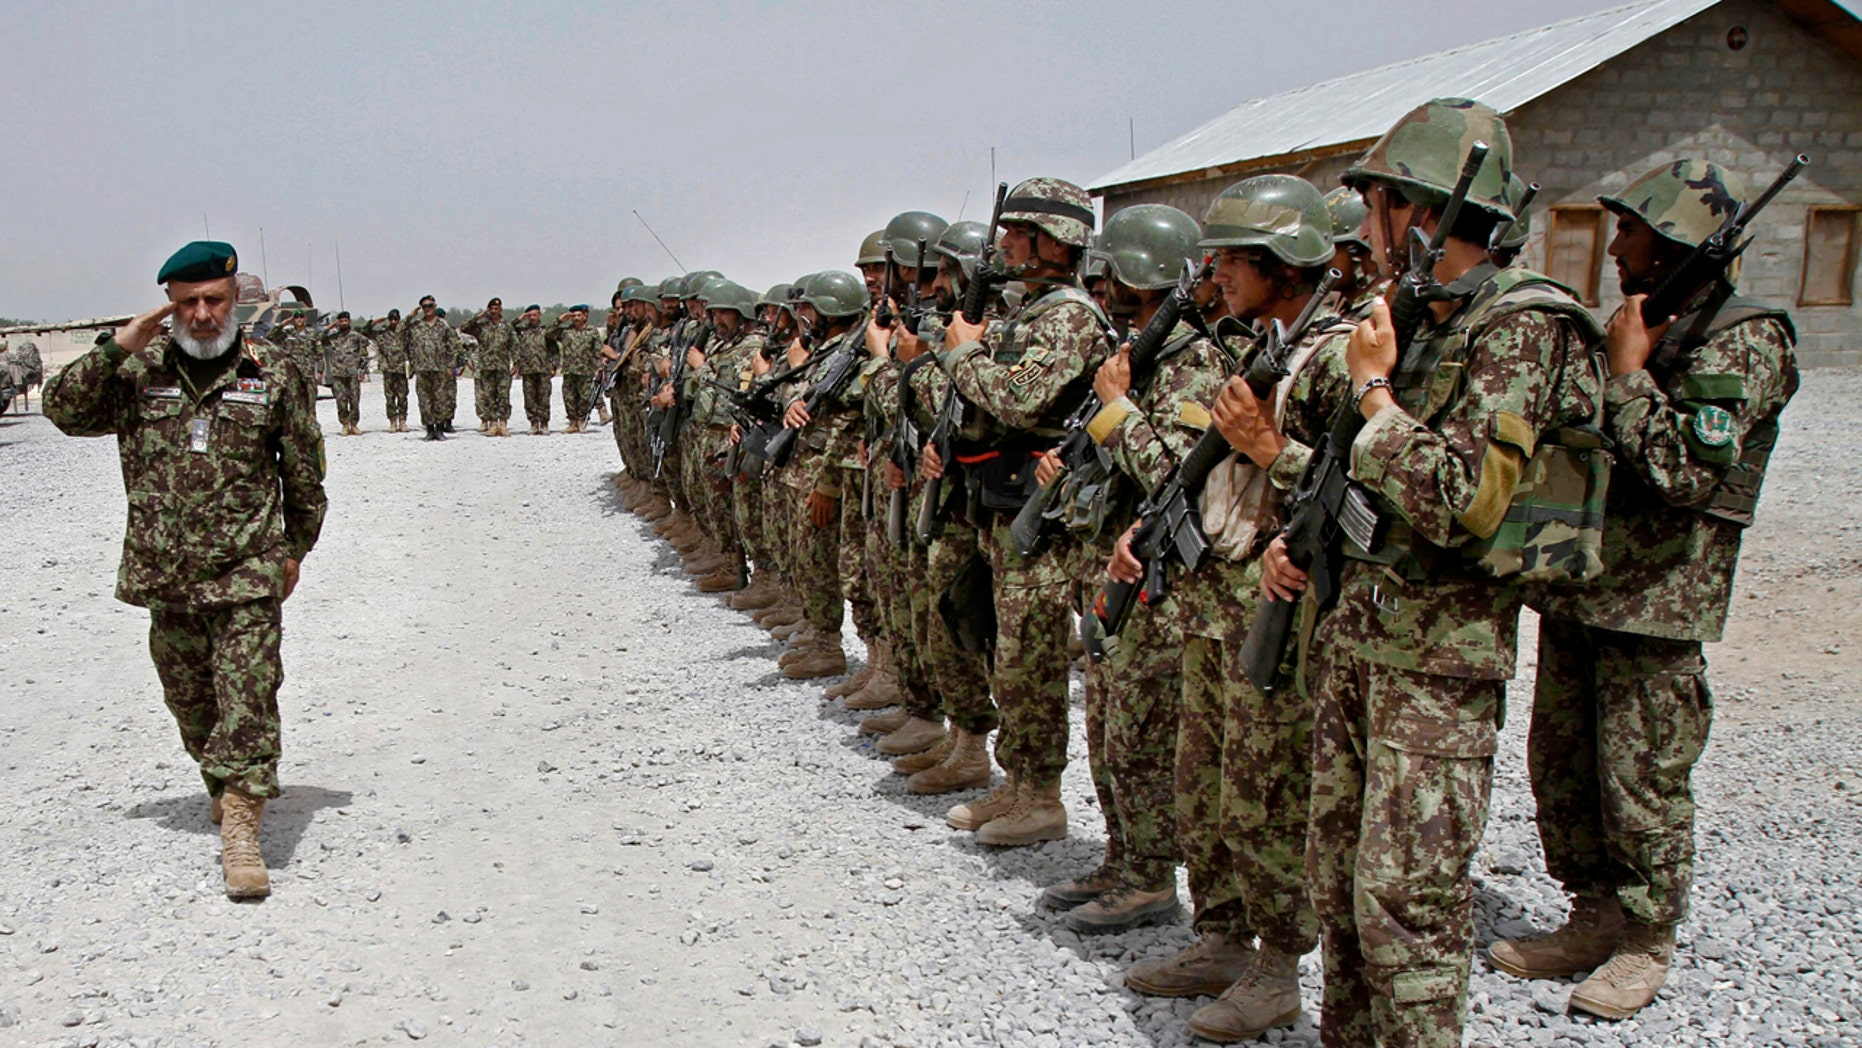 In this Thursday, June 13, 2013 file photo, Afghan National Army soldiers stand in position, in the Sangin district of Kandahar province, southern Afghanistan.